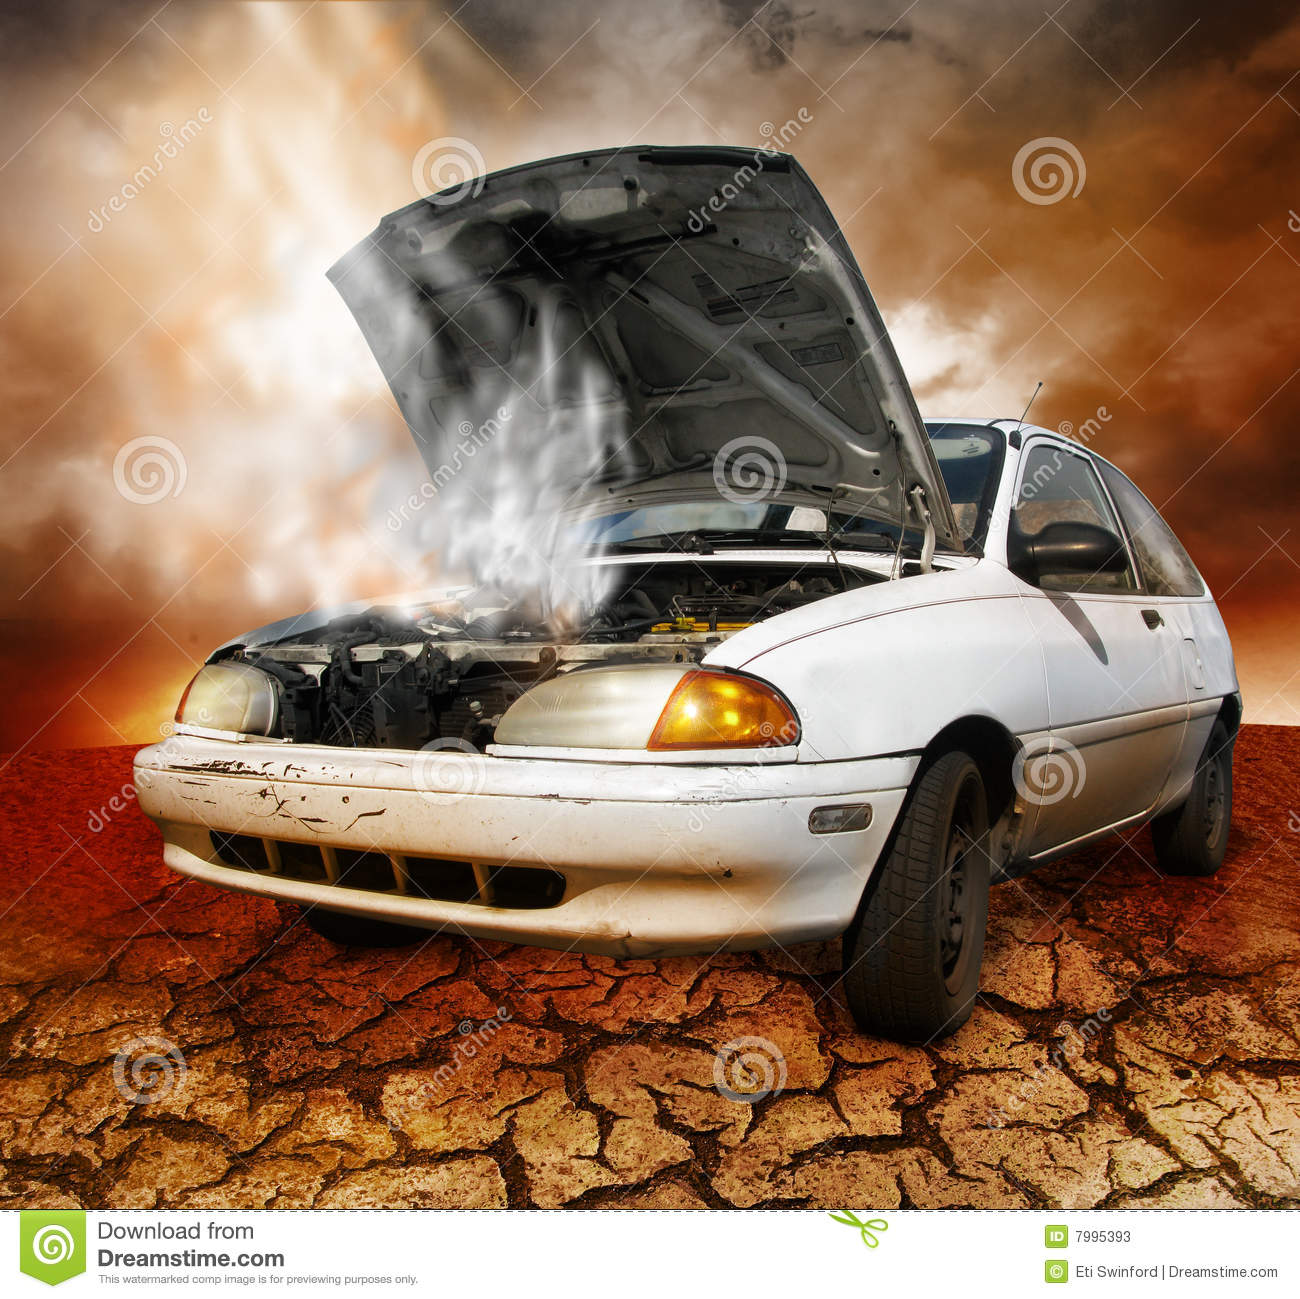 What To Do When Car Overheats >> Car broken down stock image. Image of highway, hood, automobile - 7995393